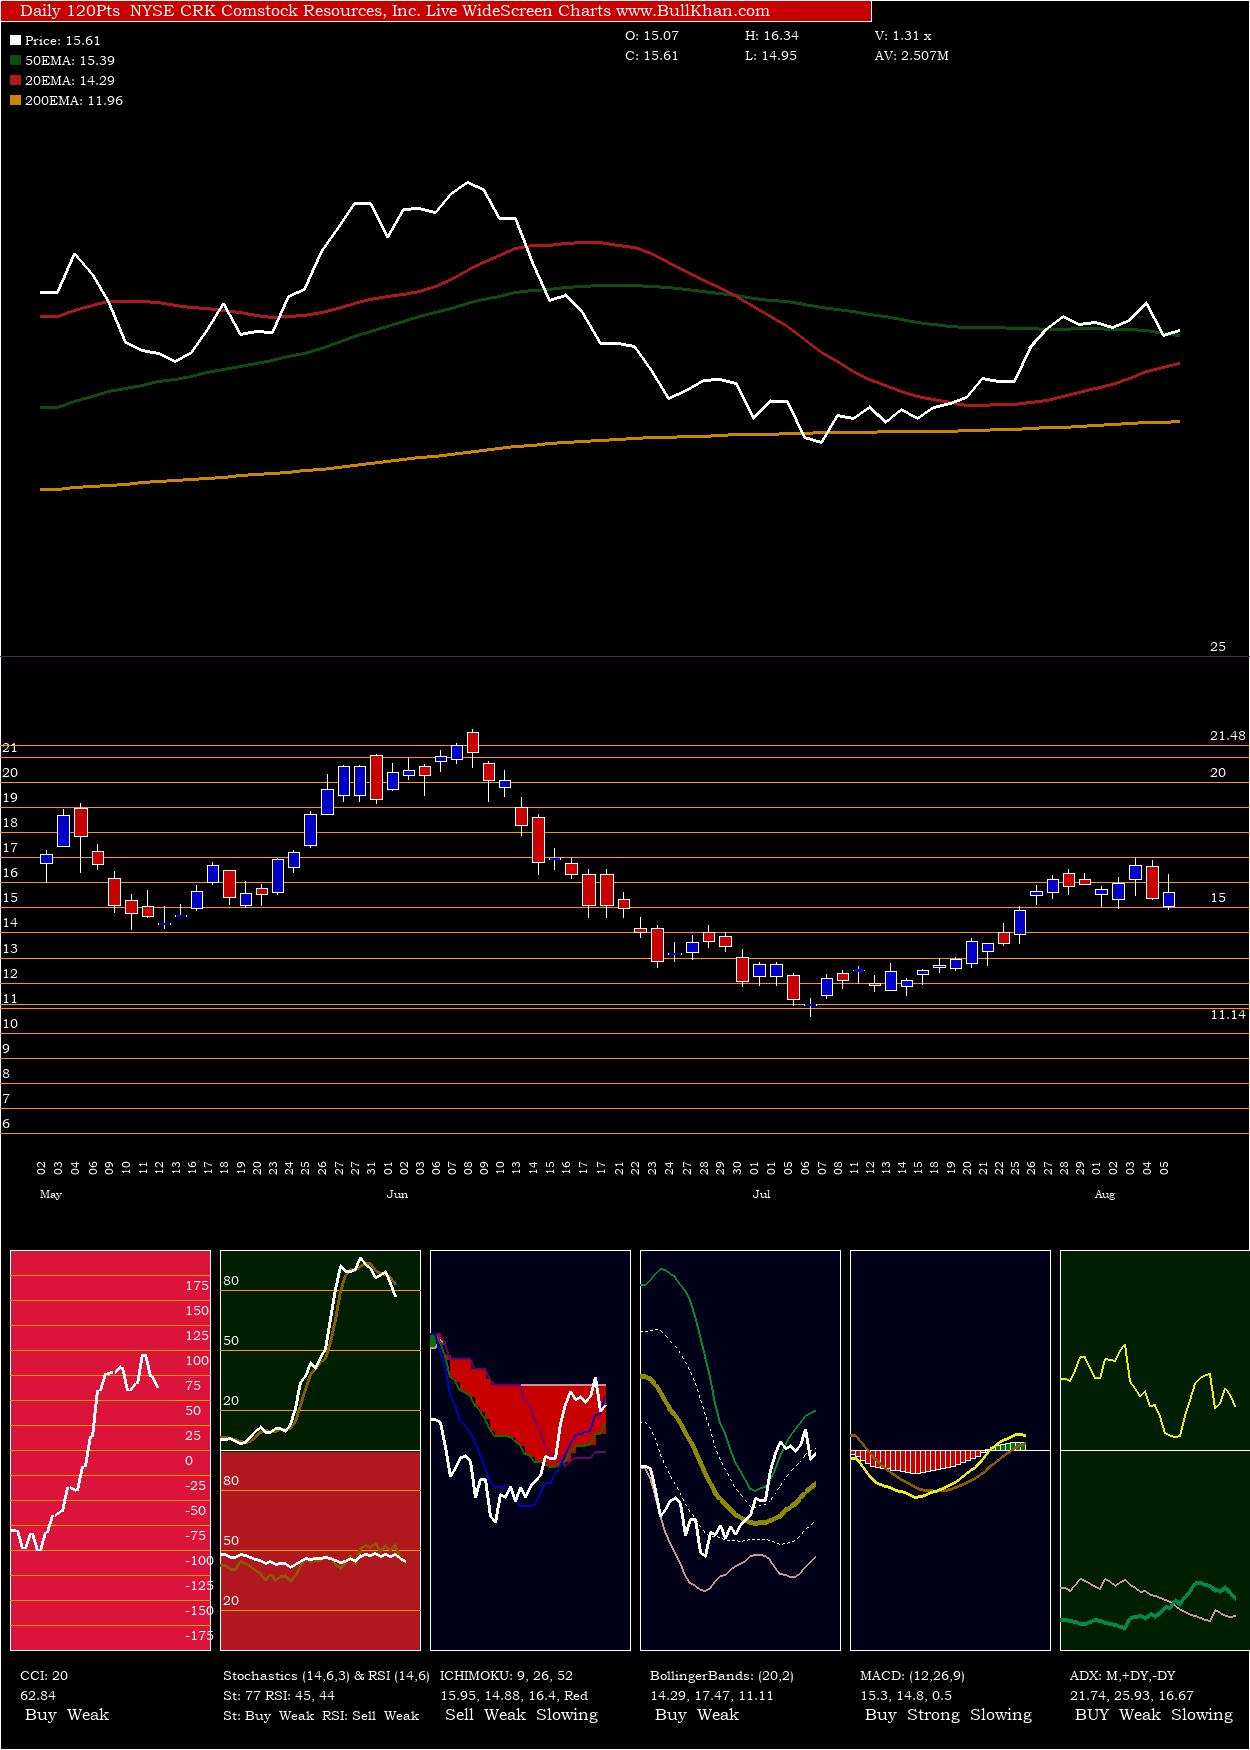 Comstock Resources, Inc. charts and indicators